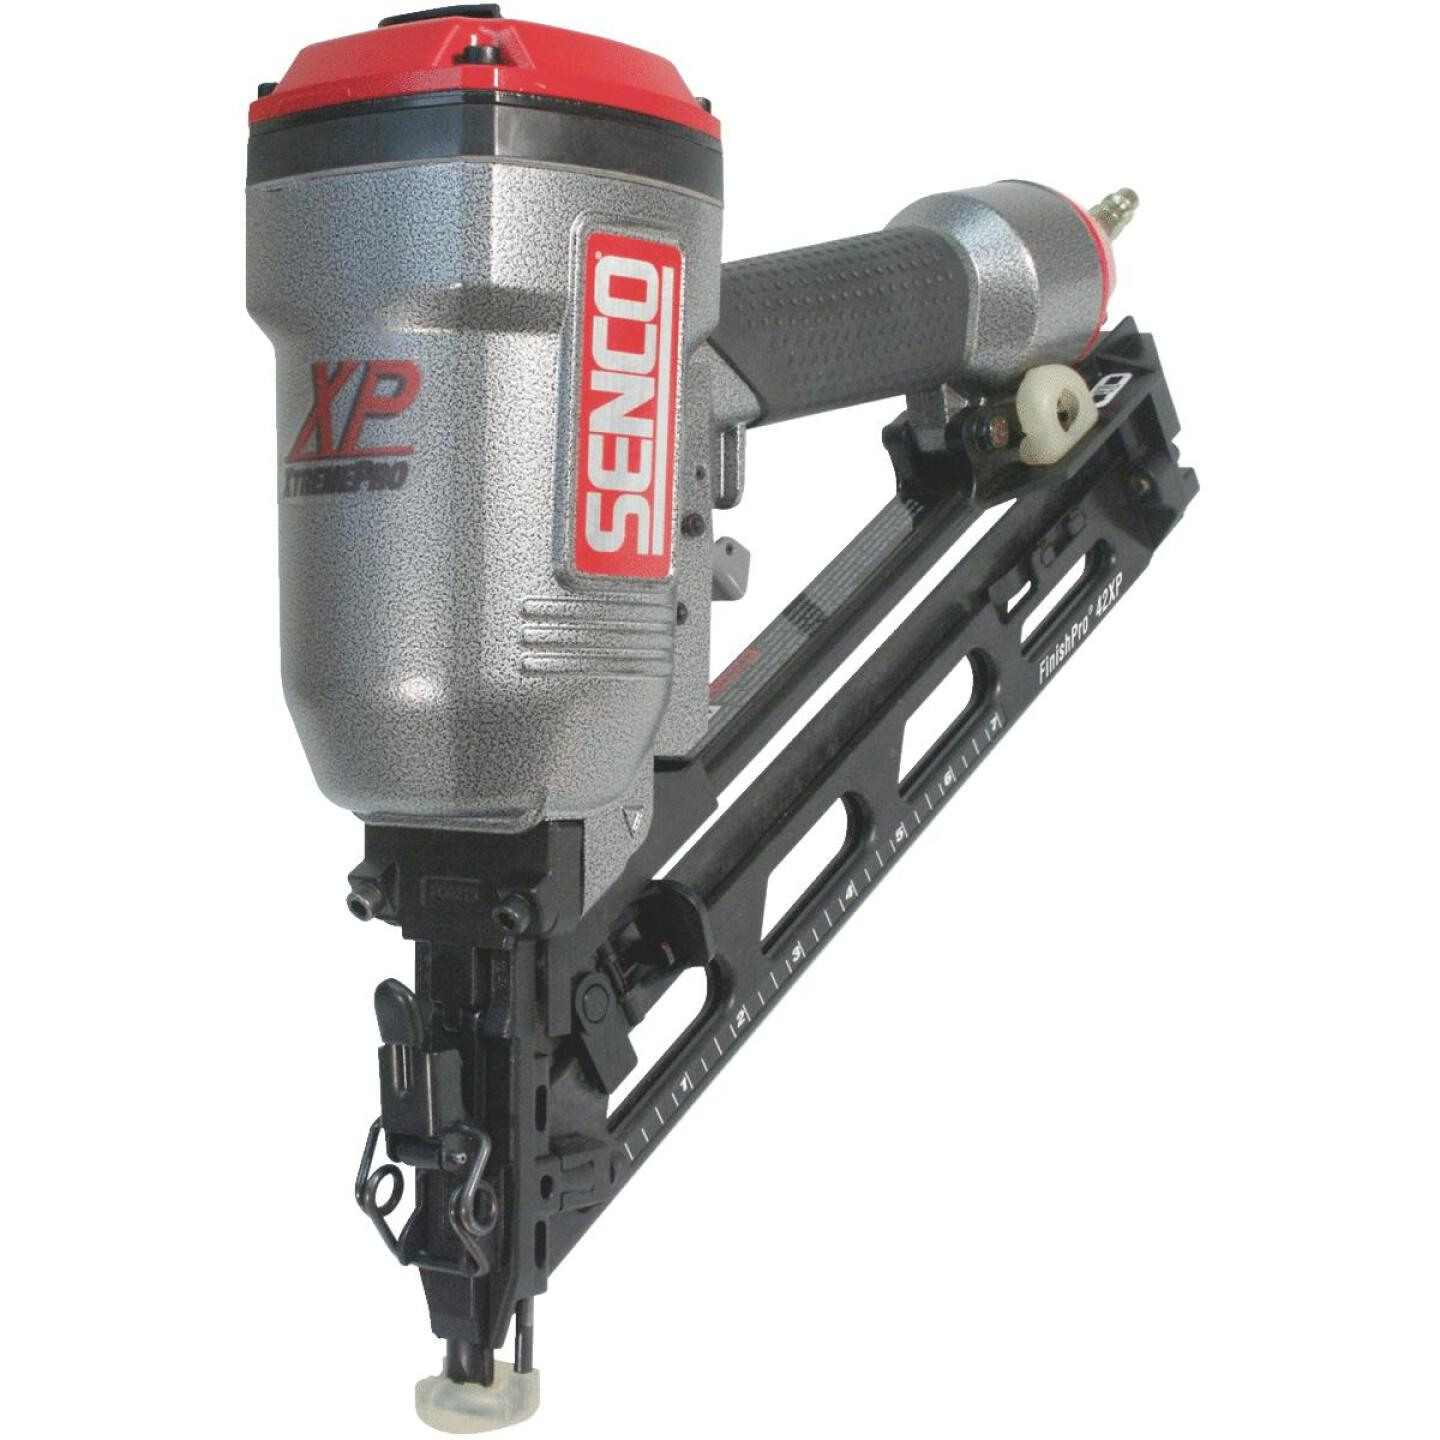 Senco FinishPro 42XP 15-Gauge 2-1/2 In. Angled Finished Nailer Image 3